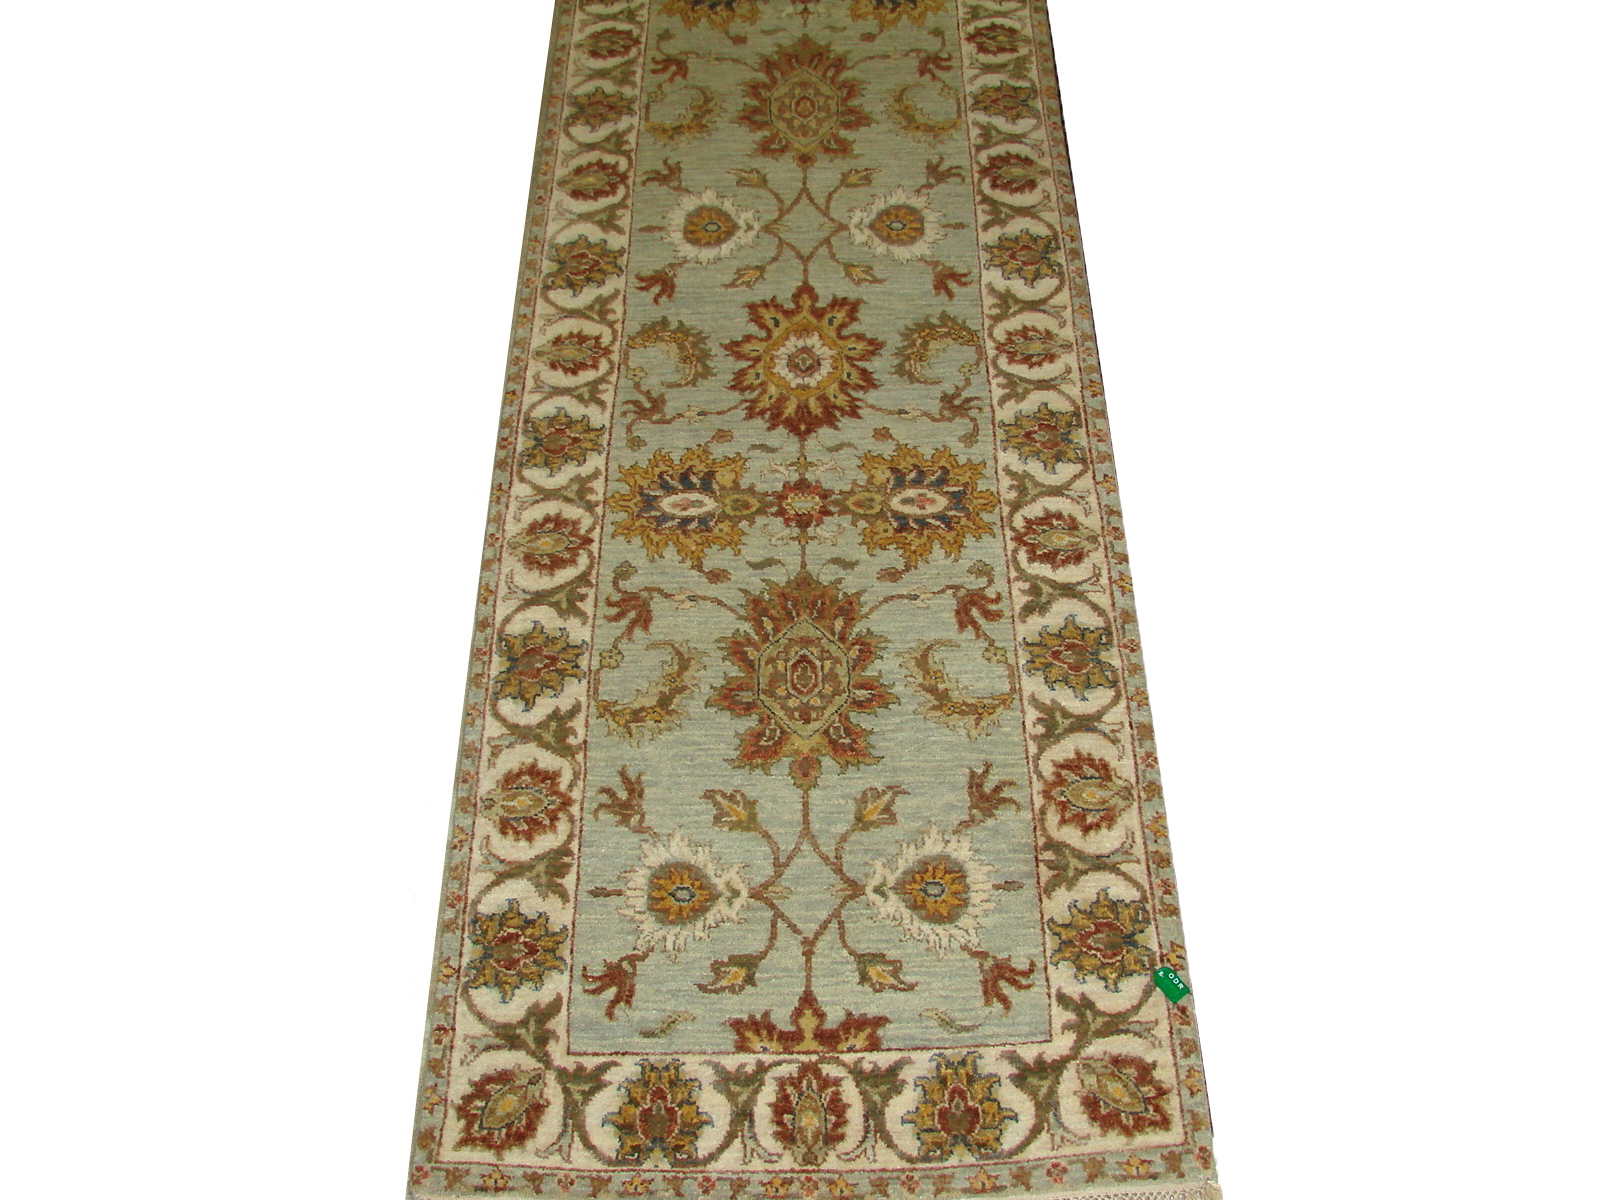 12 Runner Traditional Hand Knotted Wool Area Rug - MR20795